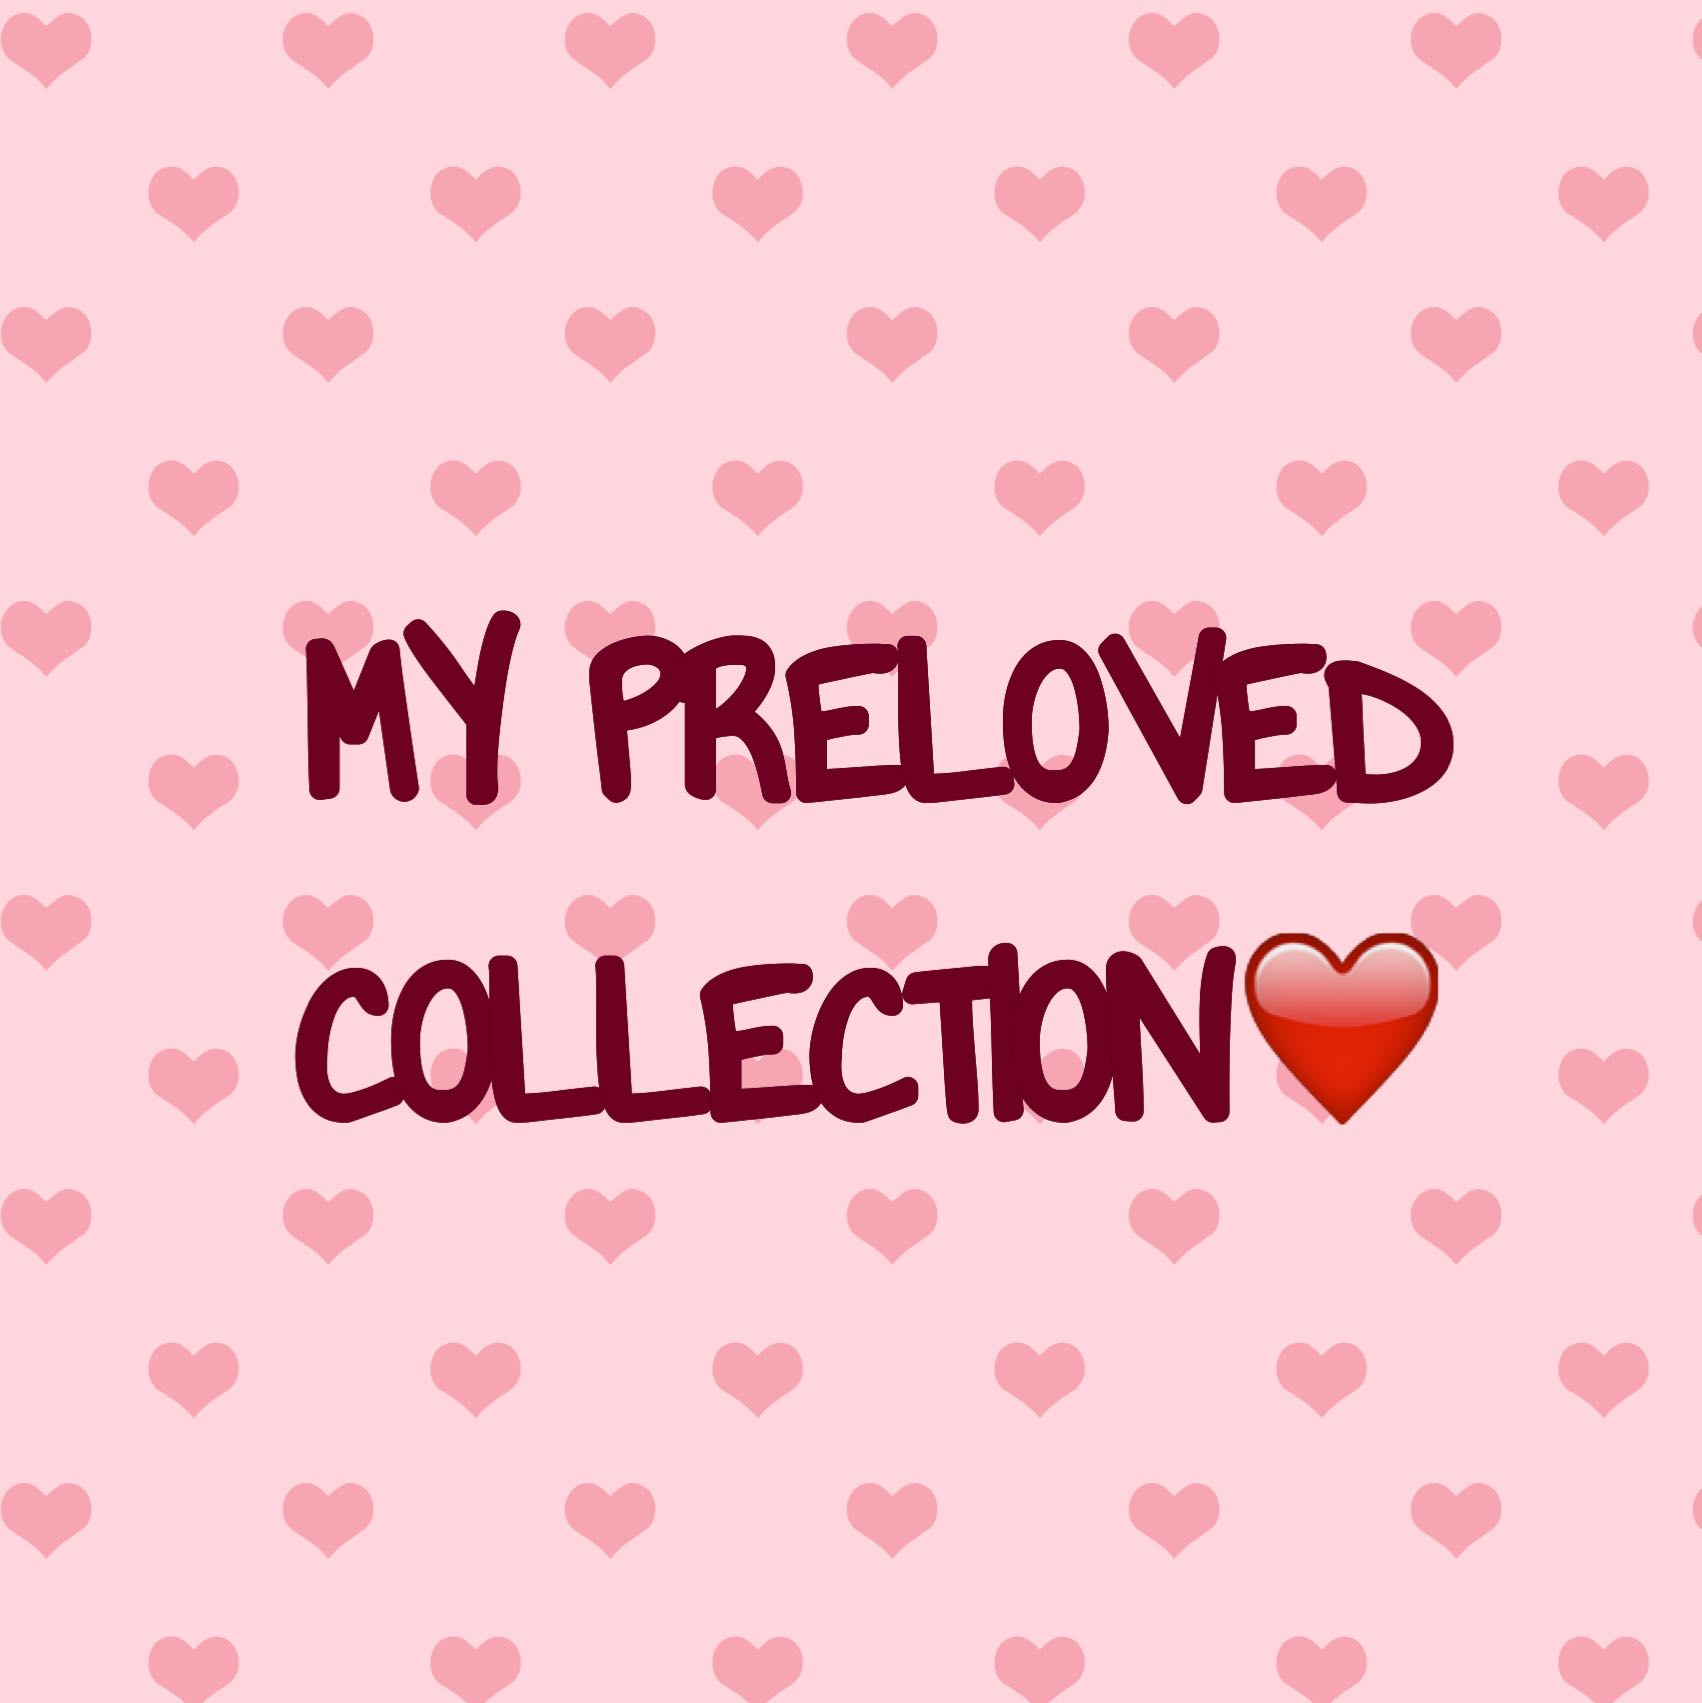 myprelovedcollection